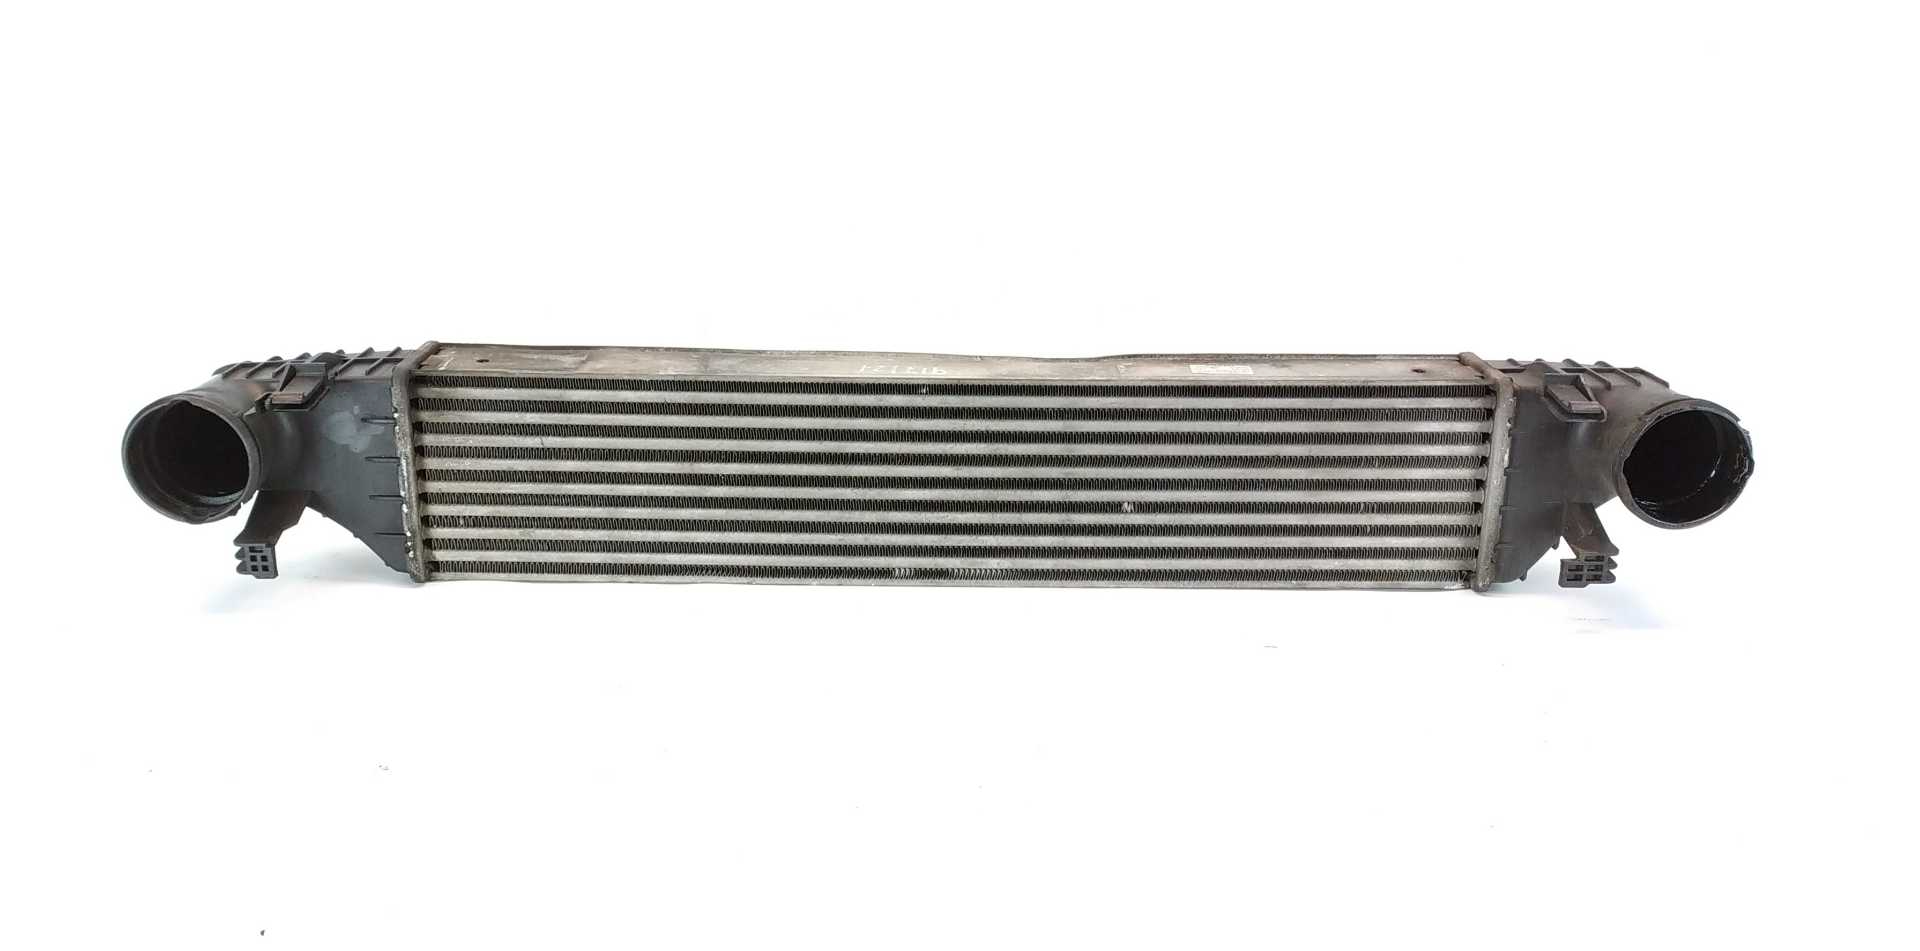 INTERCOOLER MERCEDES-BENZ CLASE C Coupé C 220 CDI (203.708) (110 KW / 150 CV) (02.2004 - 05.2008)